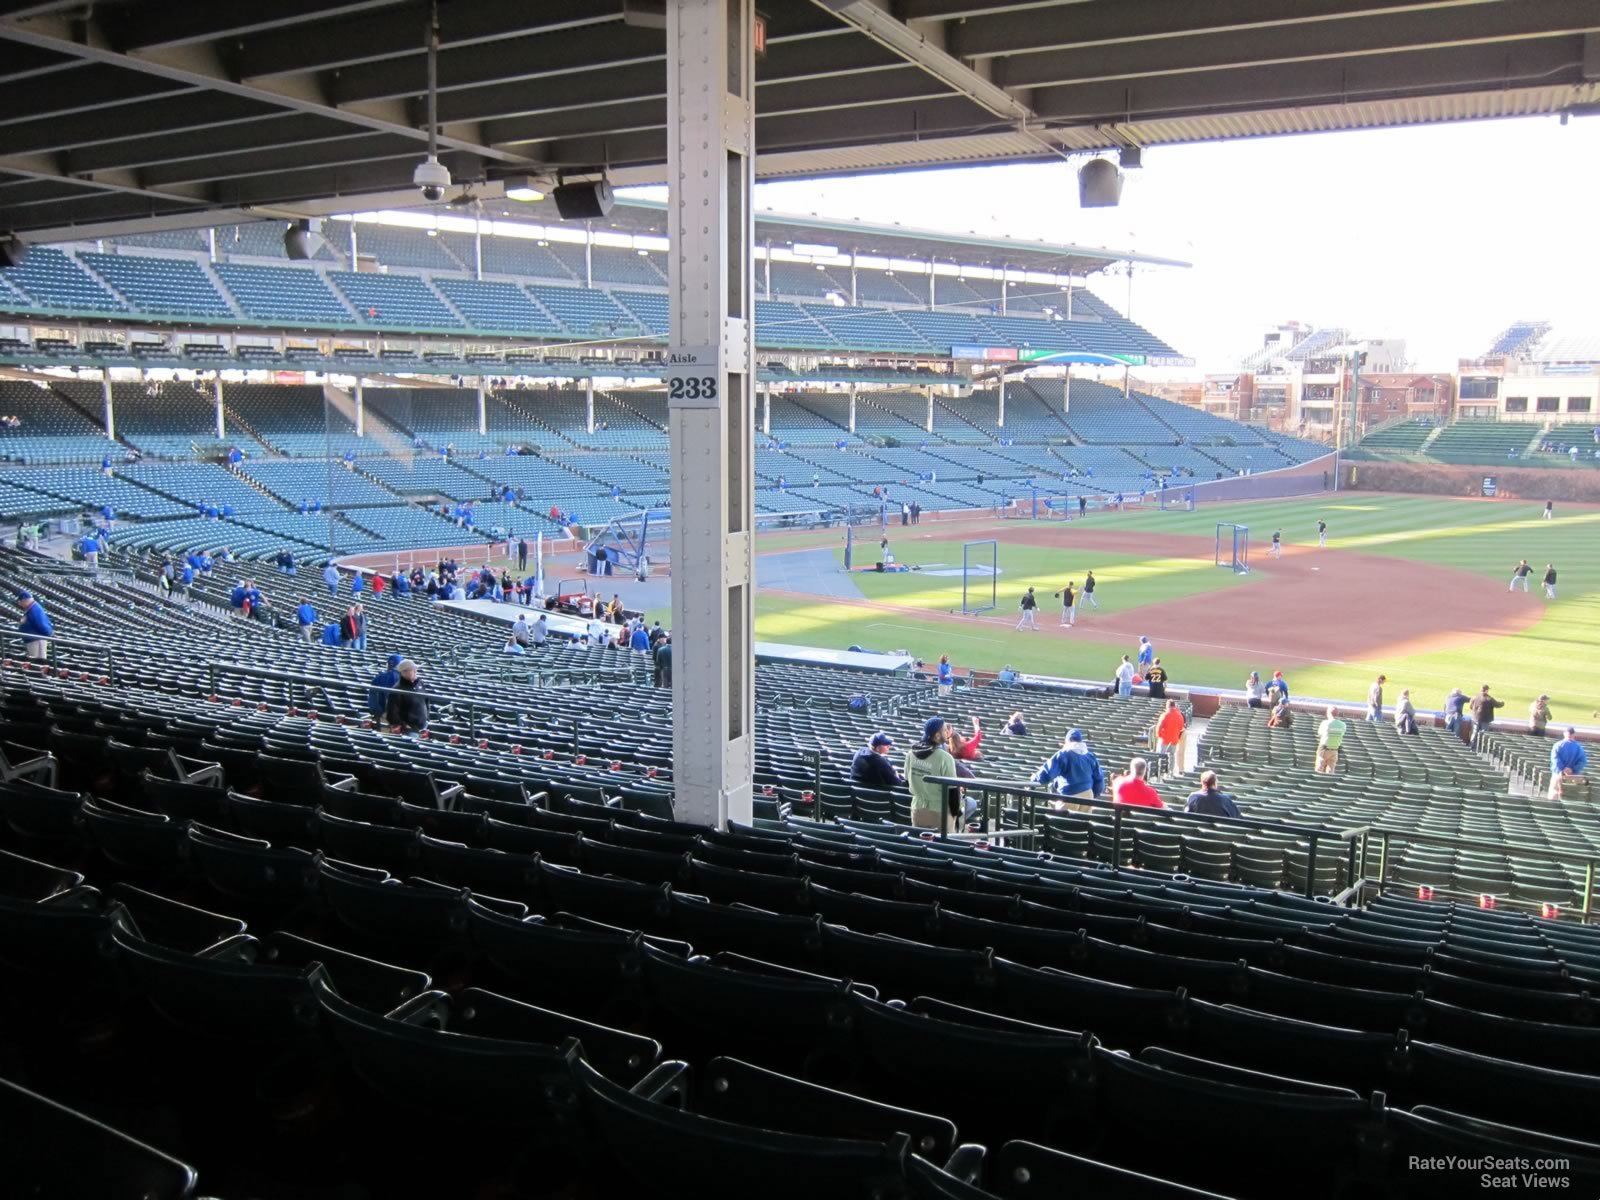 Seat View for Wrigley Field Section 233 Row 14